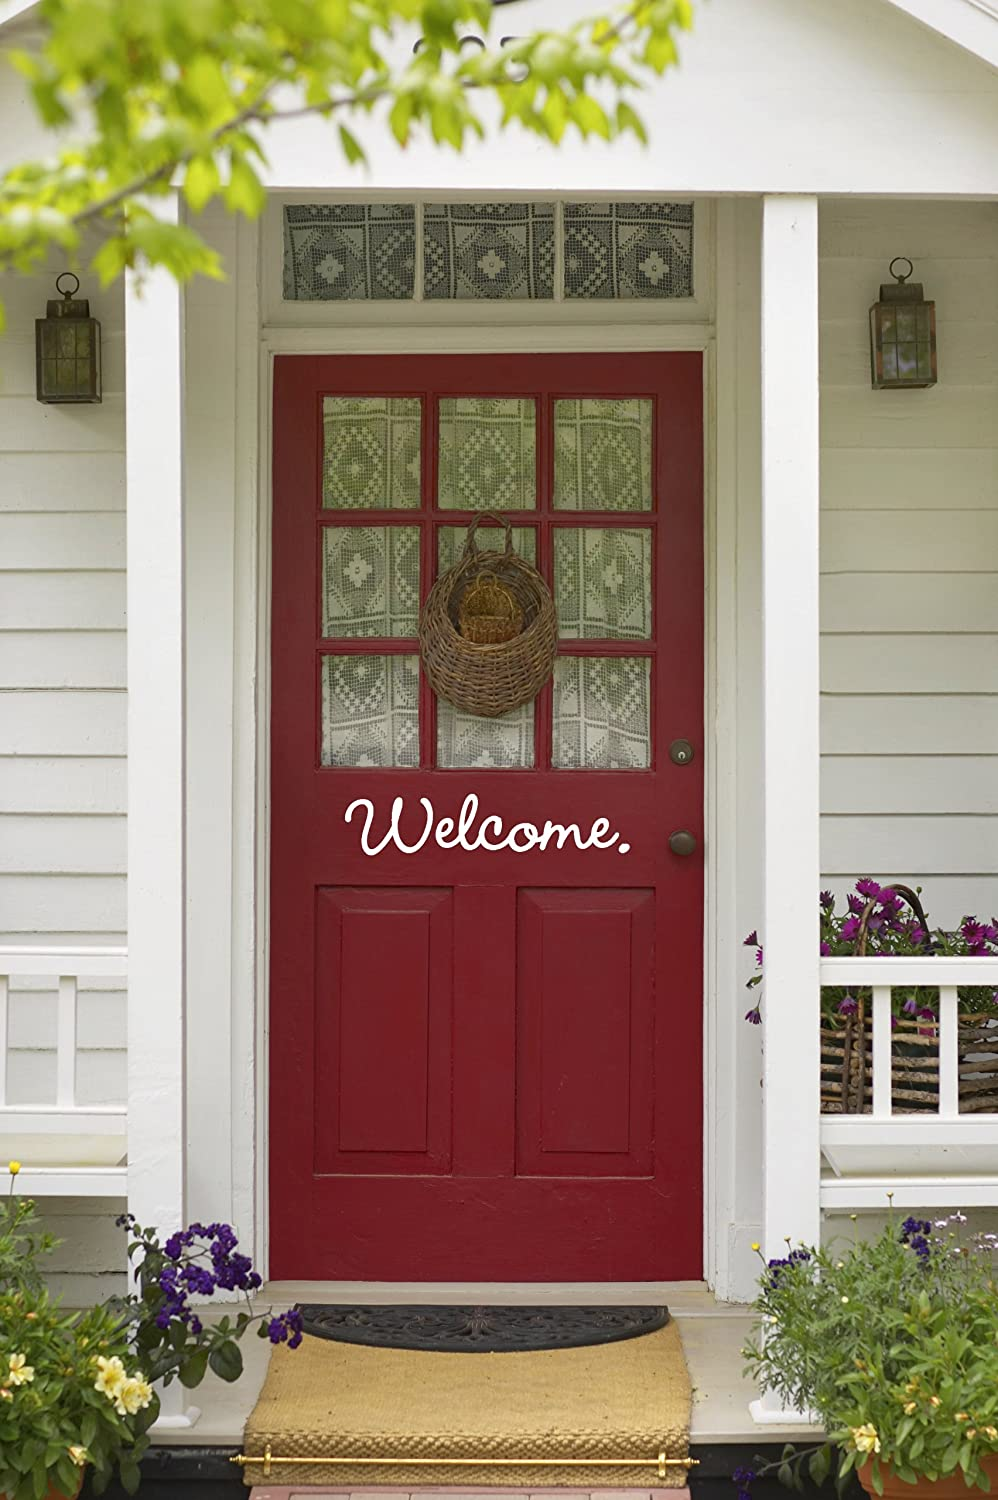 Curb appeal ideas red door welcome vinyl decal